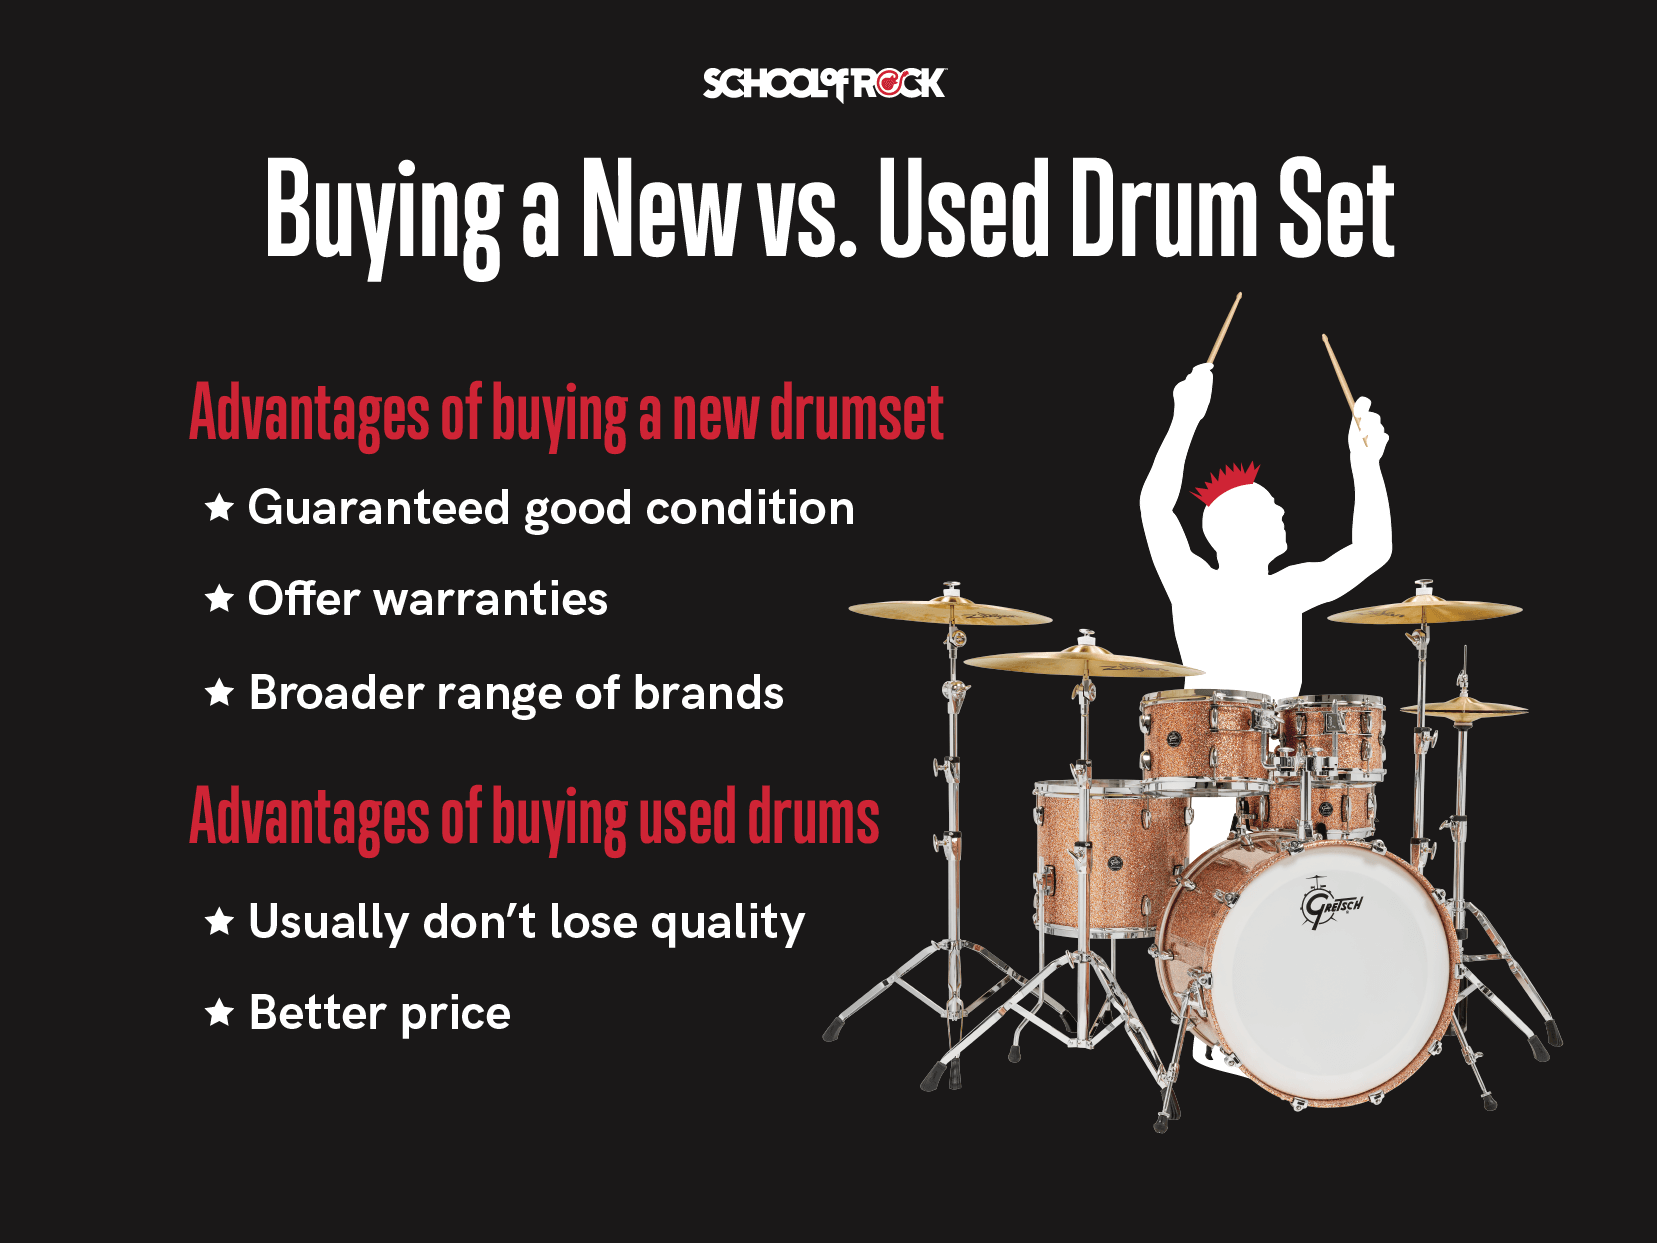 Buying a new vs used drum set